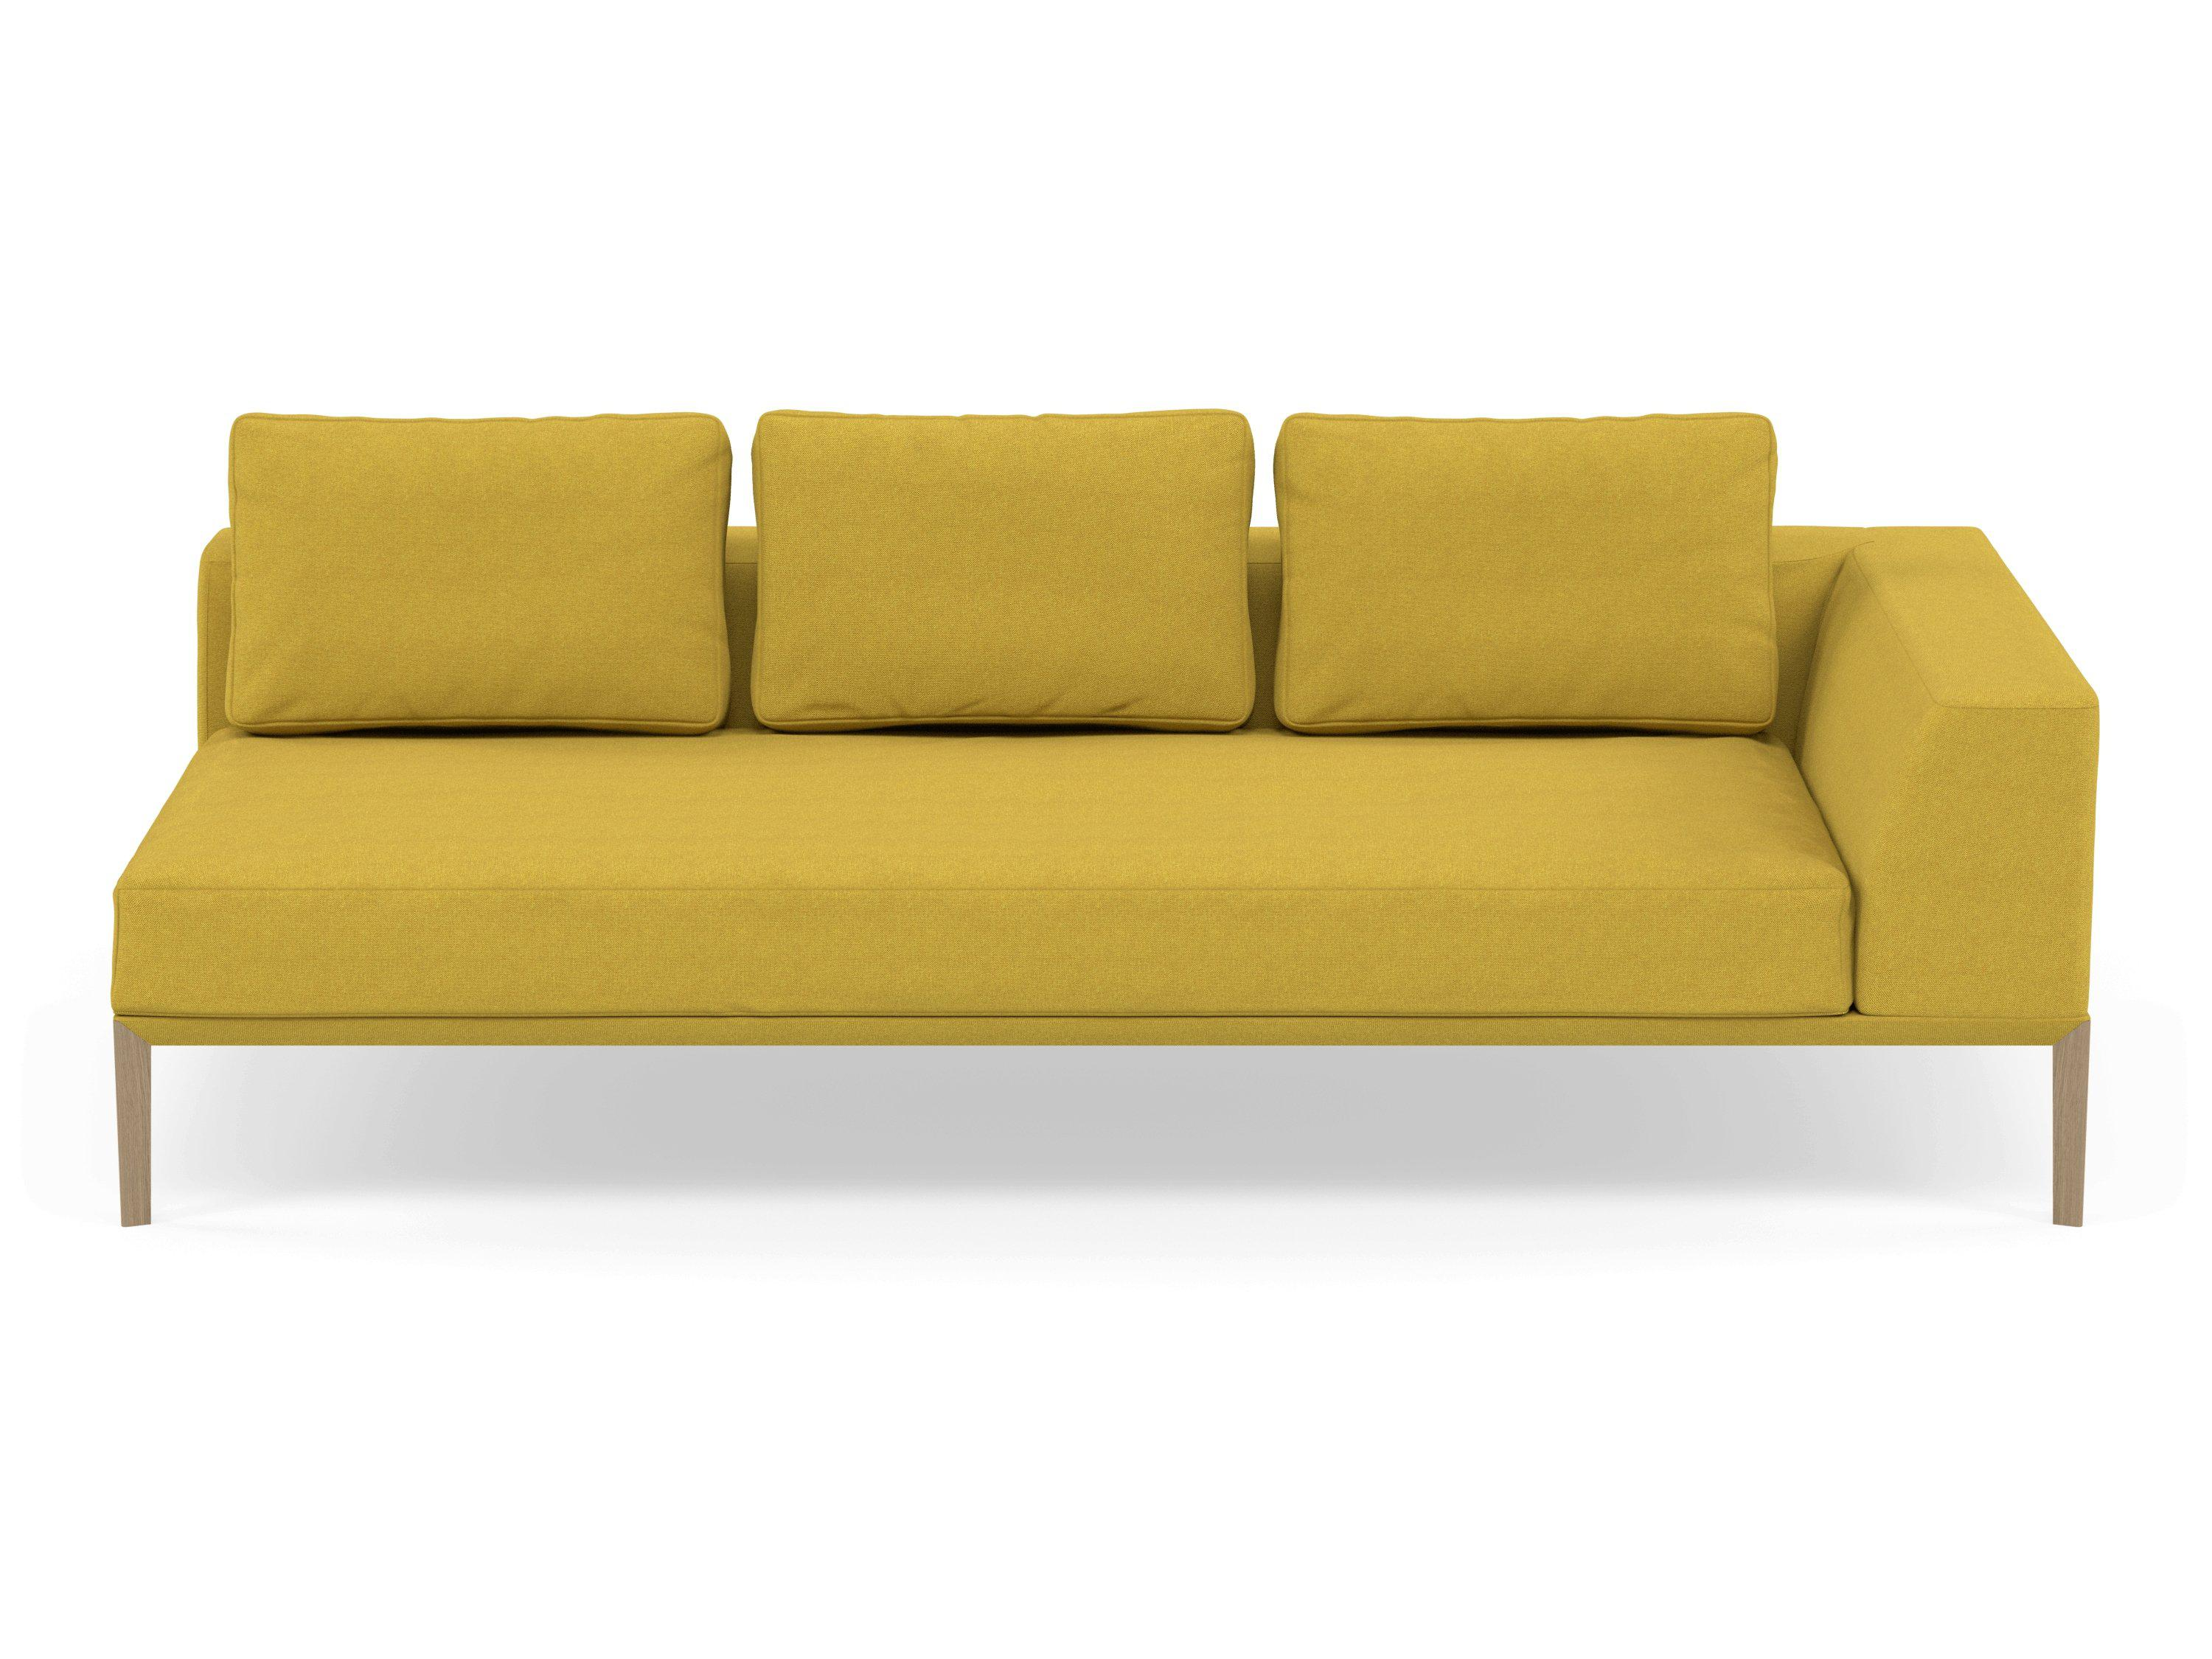 Wondrous Modern 3 Seater Chaise Lounge Style Sofa With Left Armrest In Vibrant Mustard Fabric Theyellowbook Wood Chair Design Ideas Theyellowbookinfo